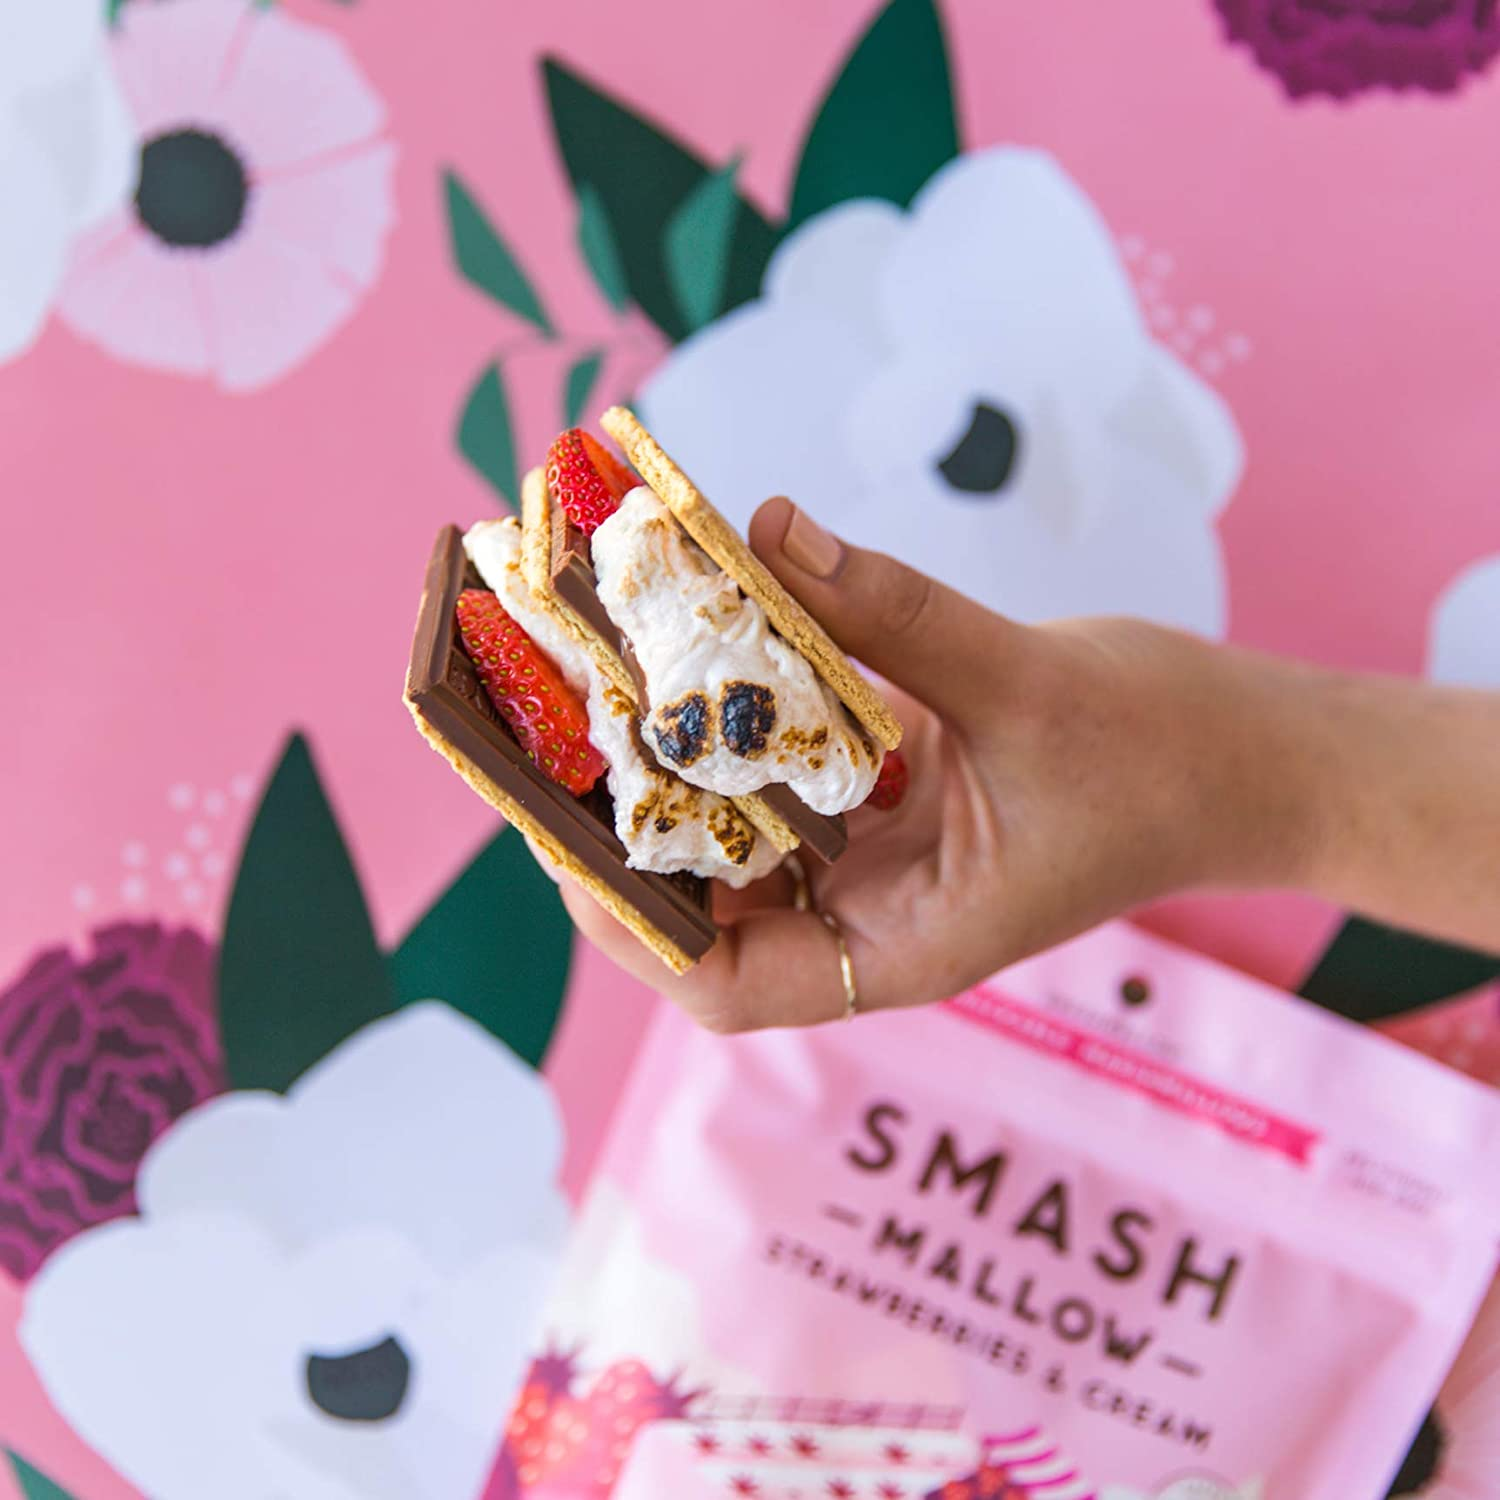 Smash Mallow Strawberries and Cream Snackable Marshmallows